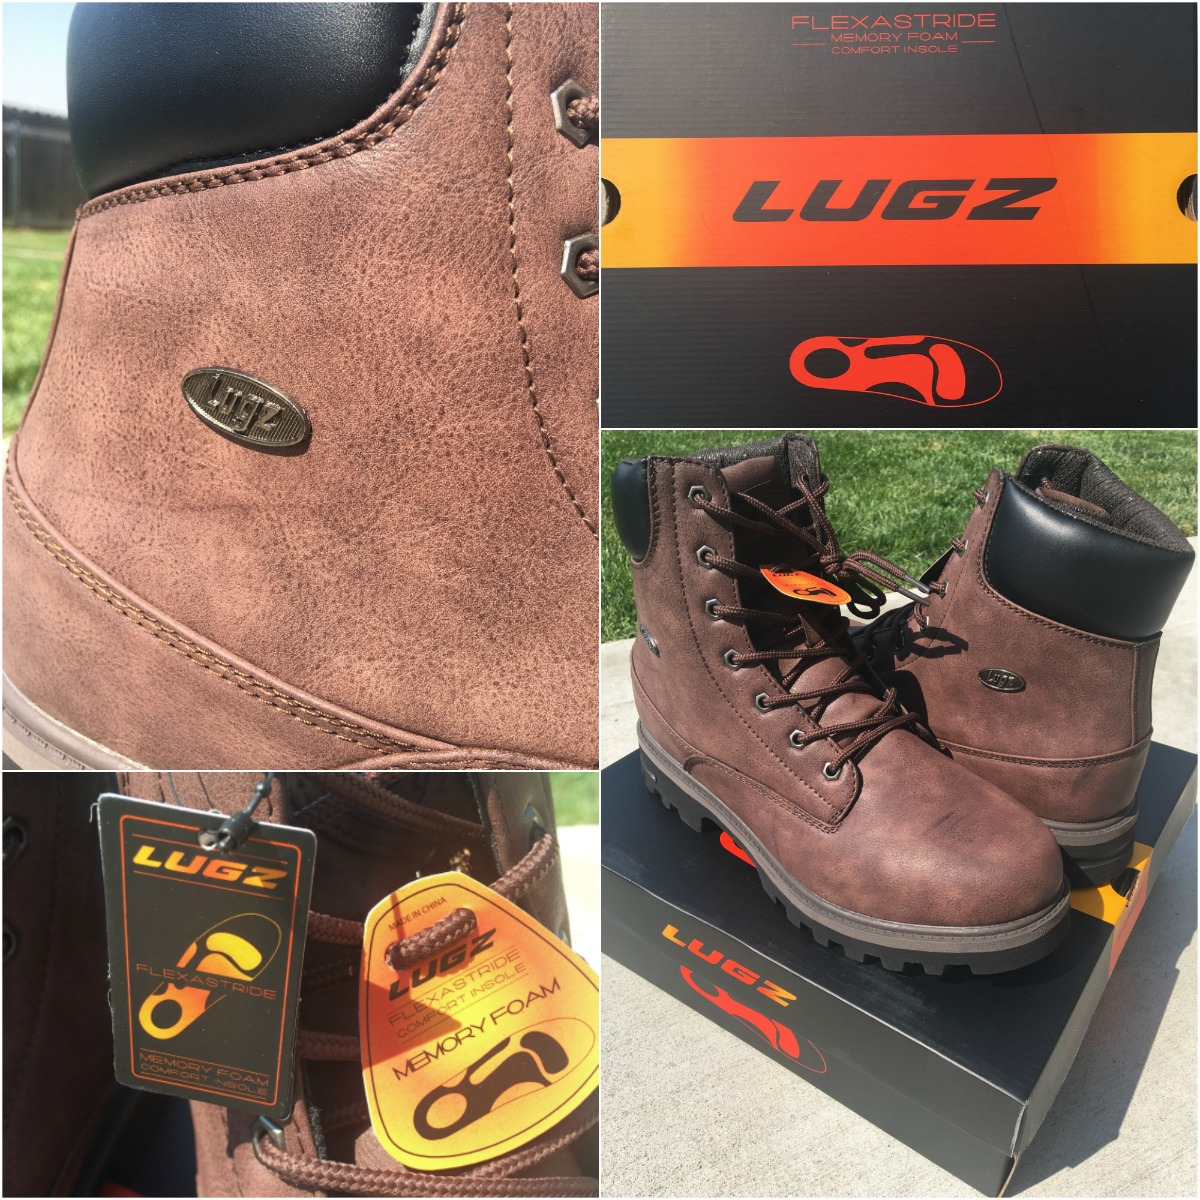 Lugz - Powered by Mom